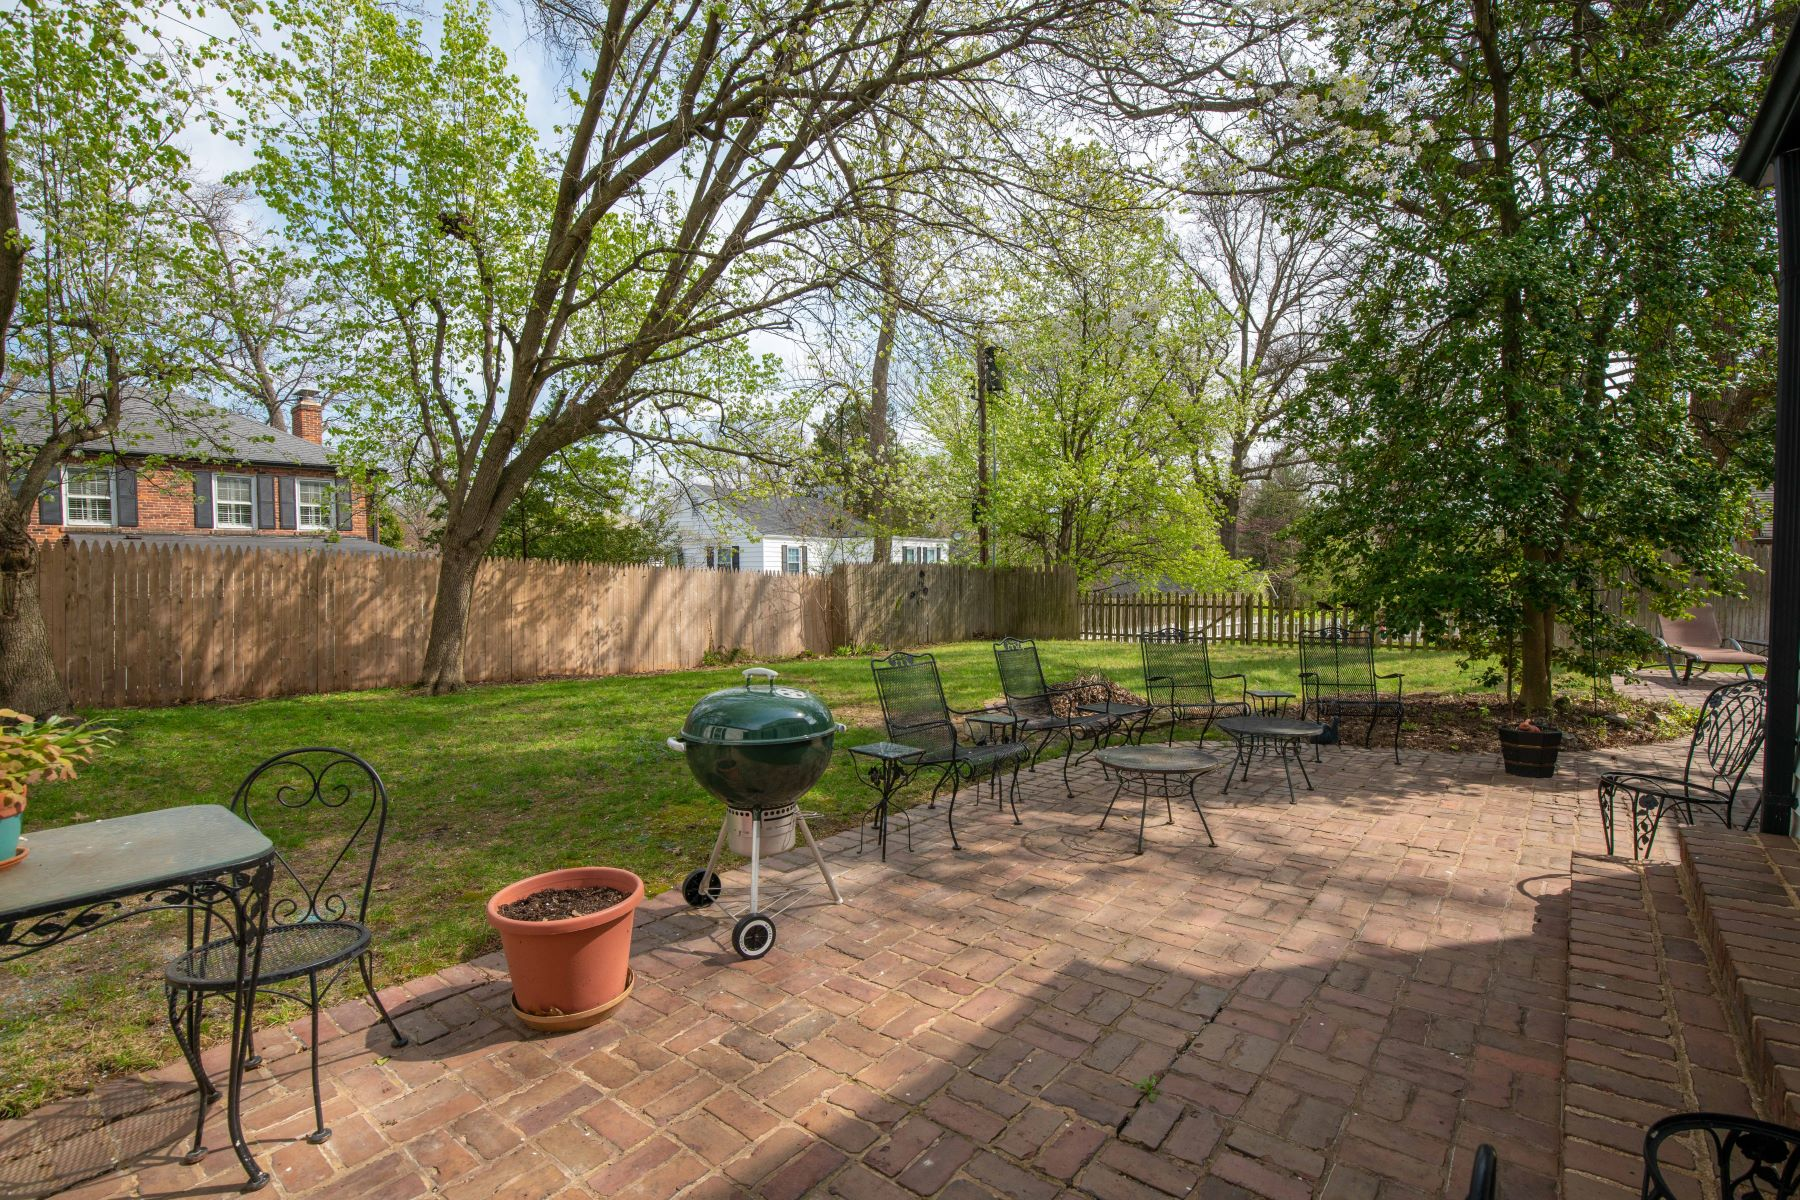 Additional photo for property listing at Incredible Opportunity in Ladue! 8967 Ladue Road Ladue, Missouri 63124 United States